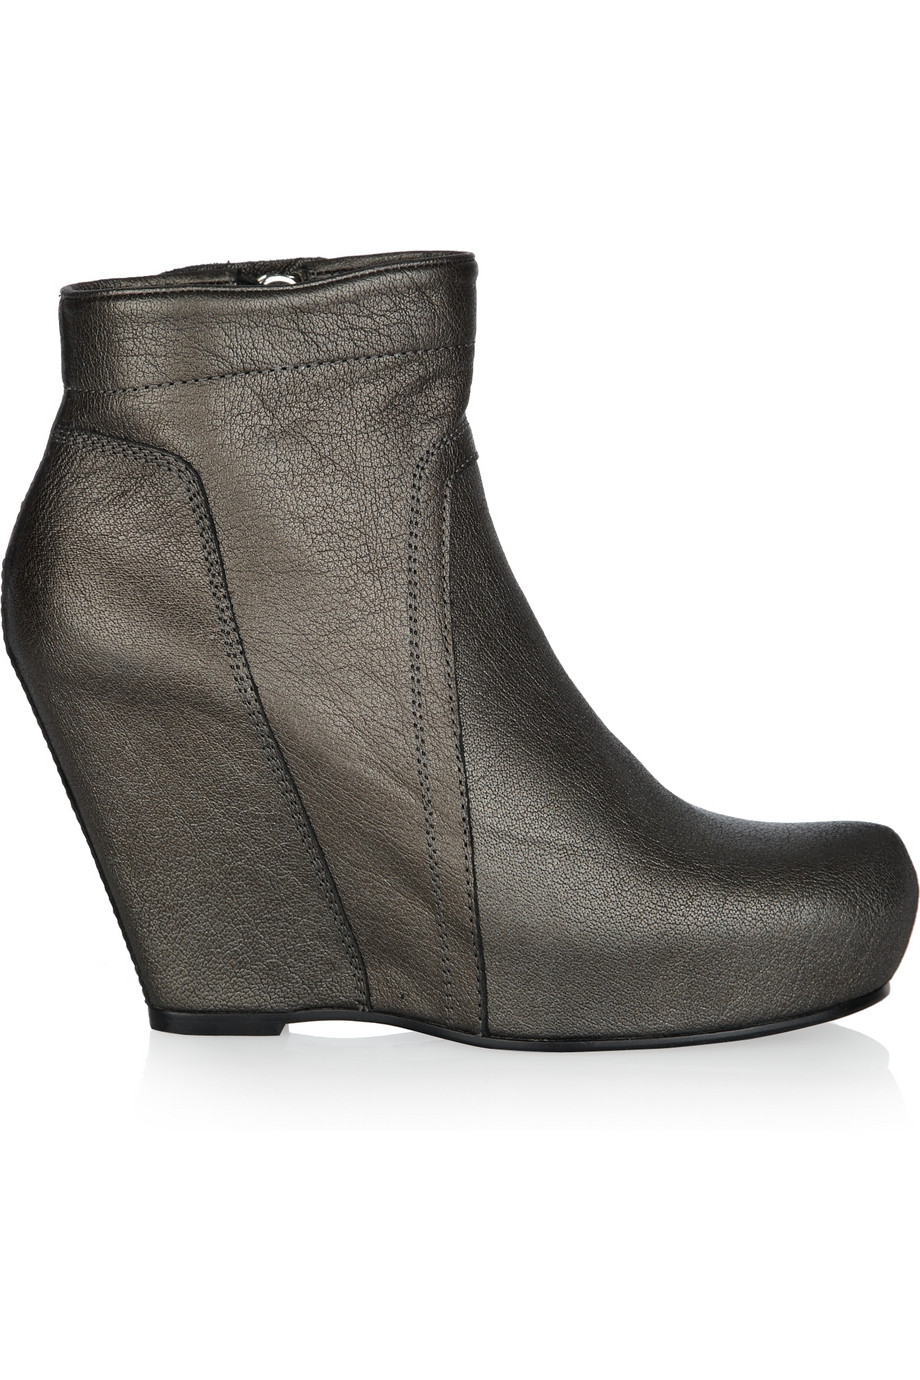 rick owens metallic leather wedge ankle boots in brown lyst